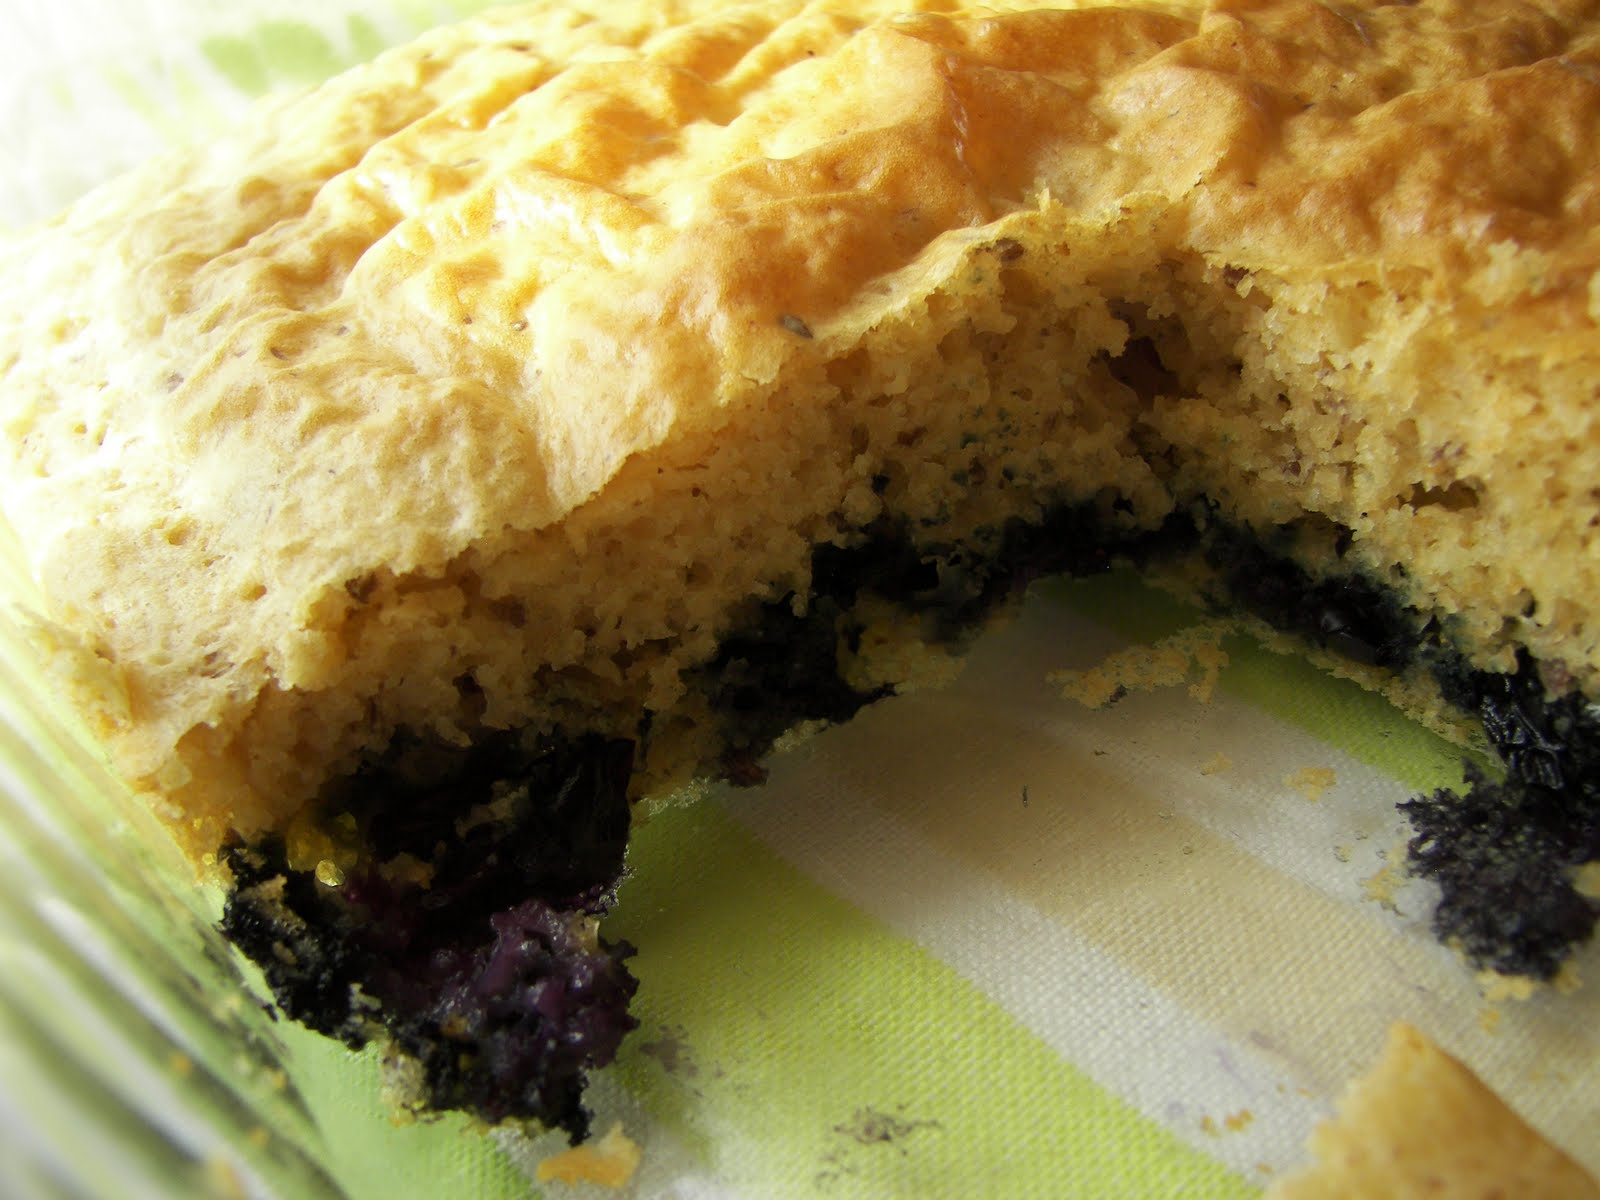 Ambition's Kitchen: OVEN BAKED BLUEBERRY PANCAKE